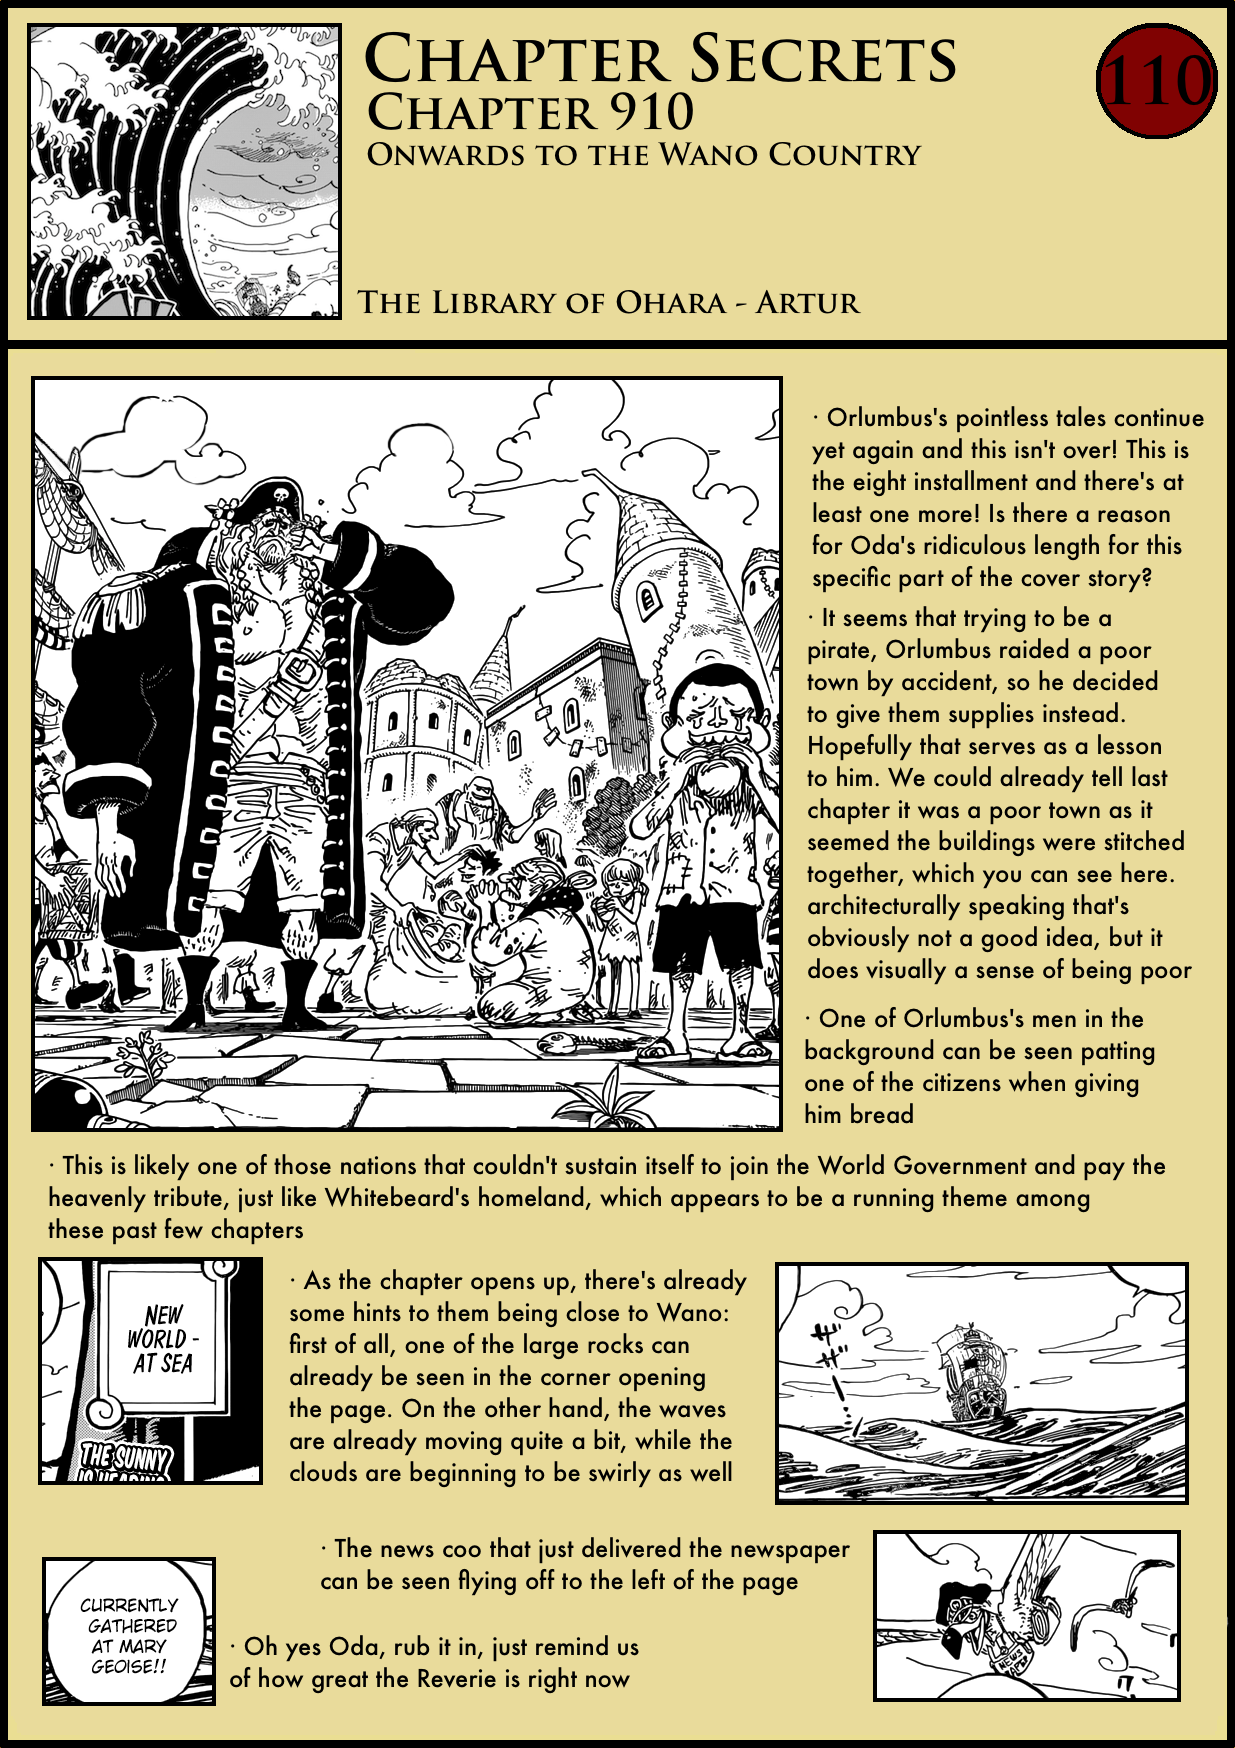 chapter secrets chapter 910 in depth analysis the library of ohara. Black Bedroom Furniture Sets. Home Design Ideas